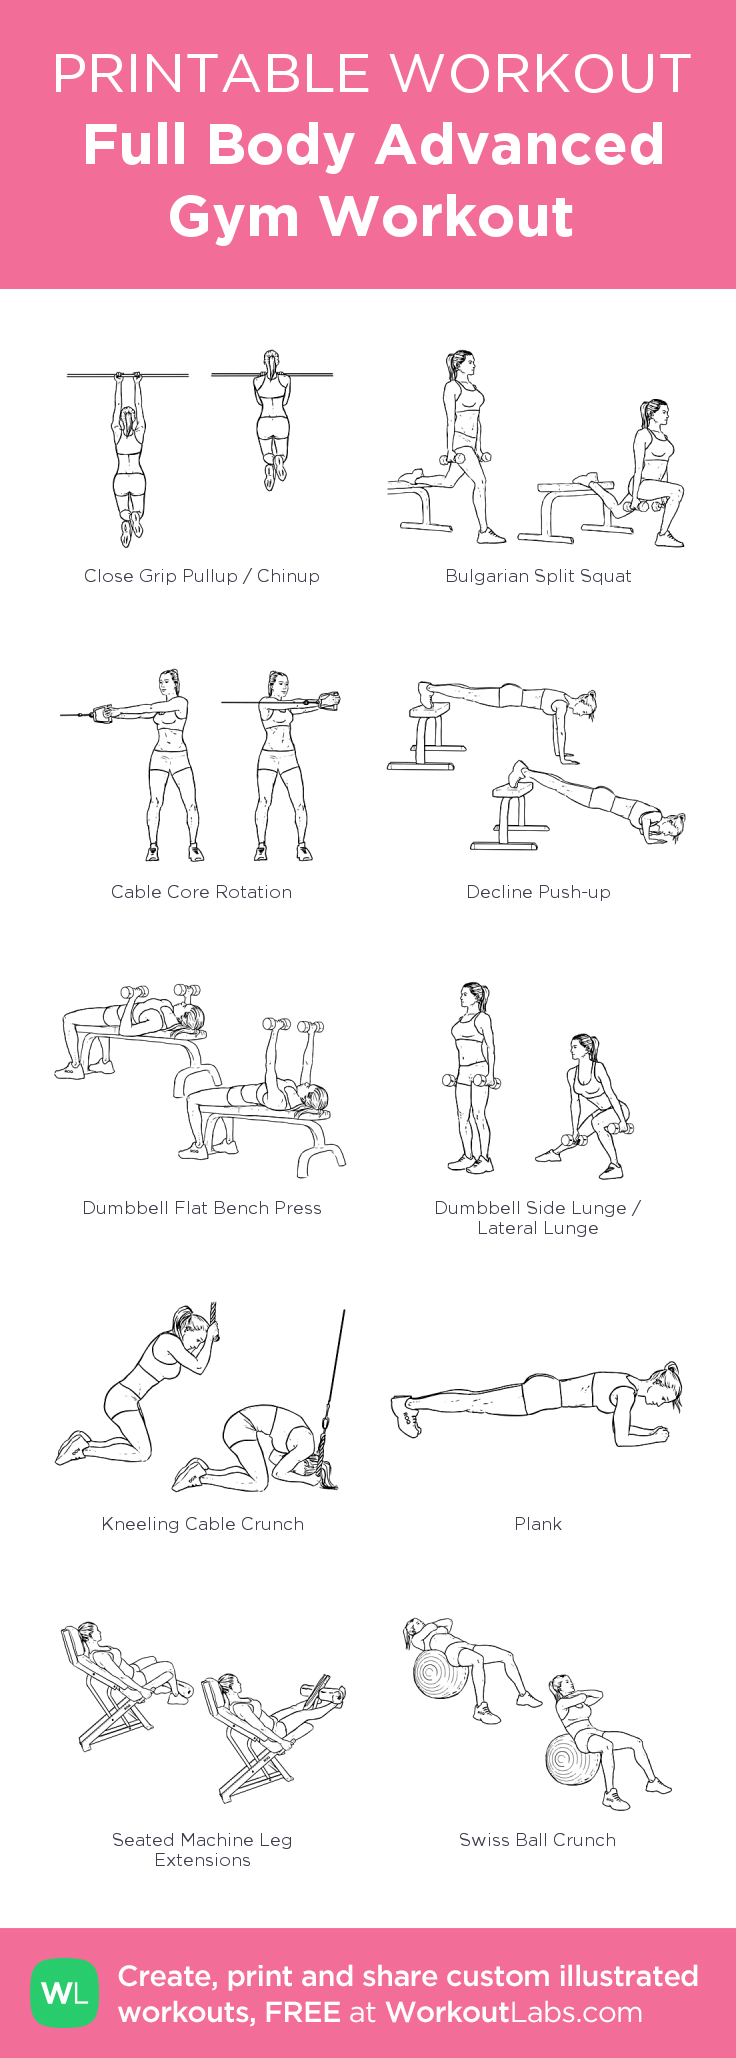 Full Body Workout Pdf